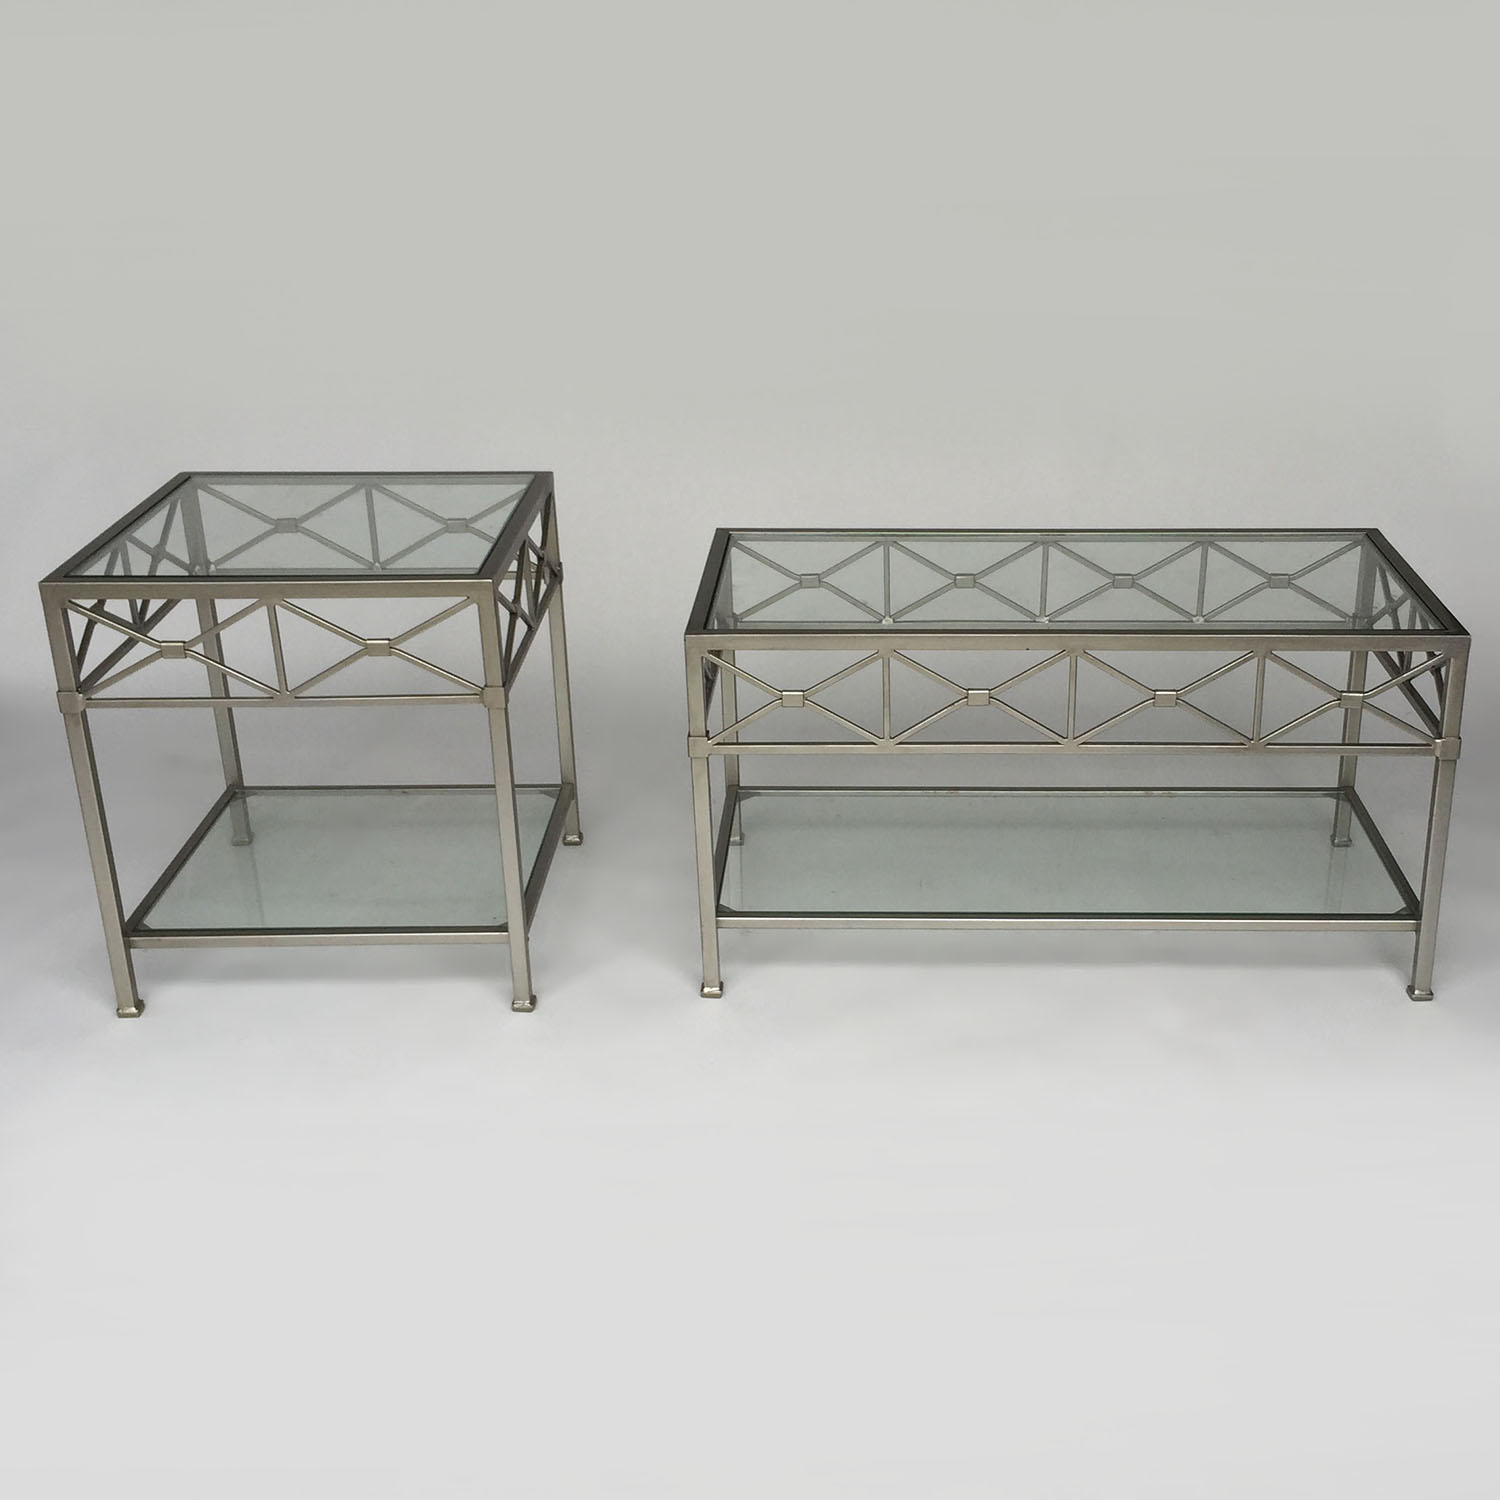 shop Unknown Brand Cast Iron Coffee Table Set online